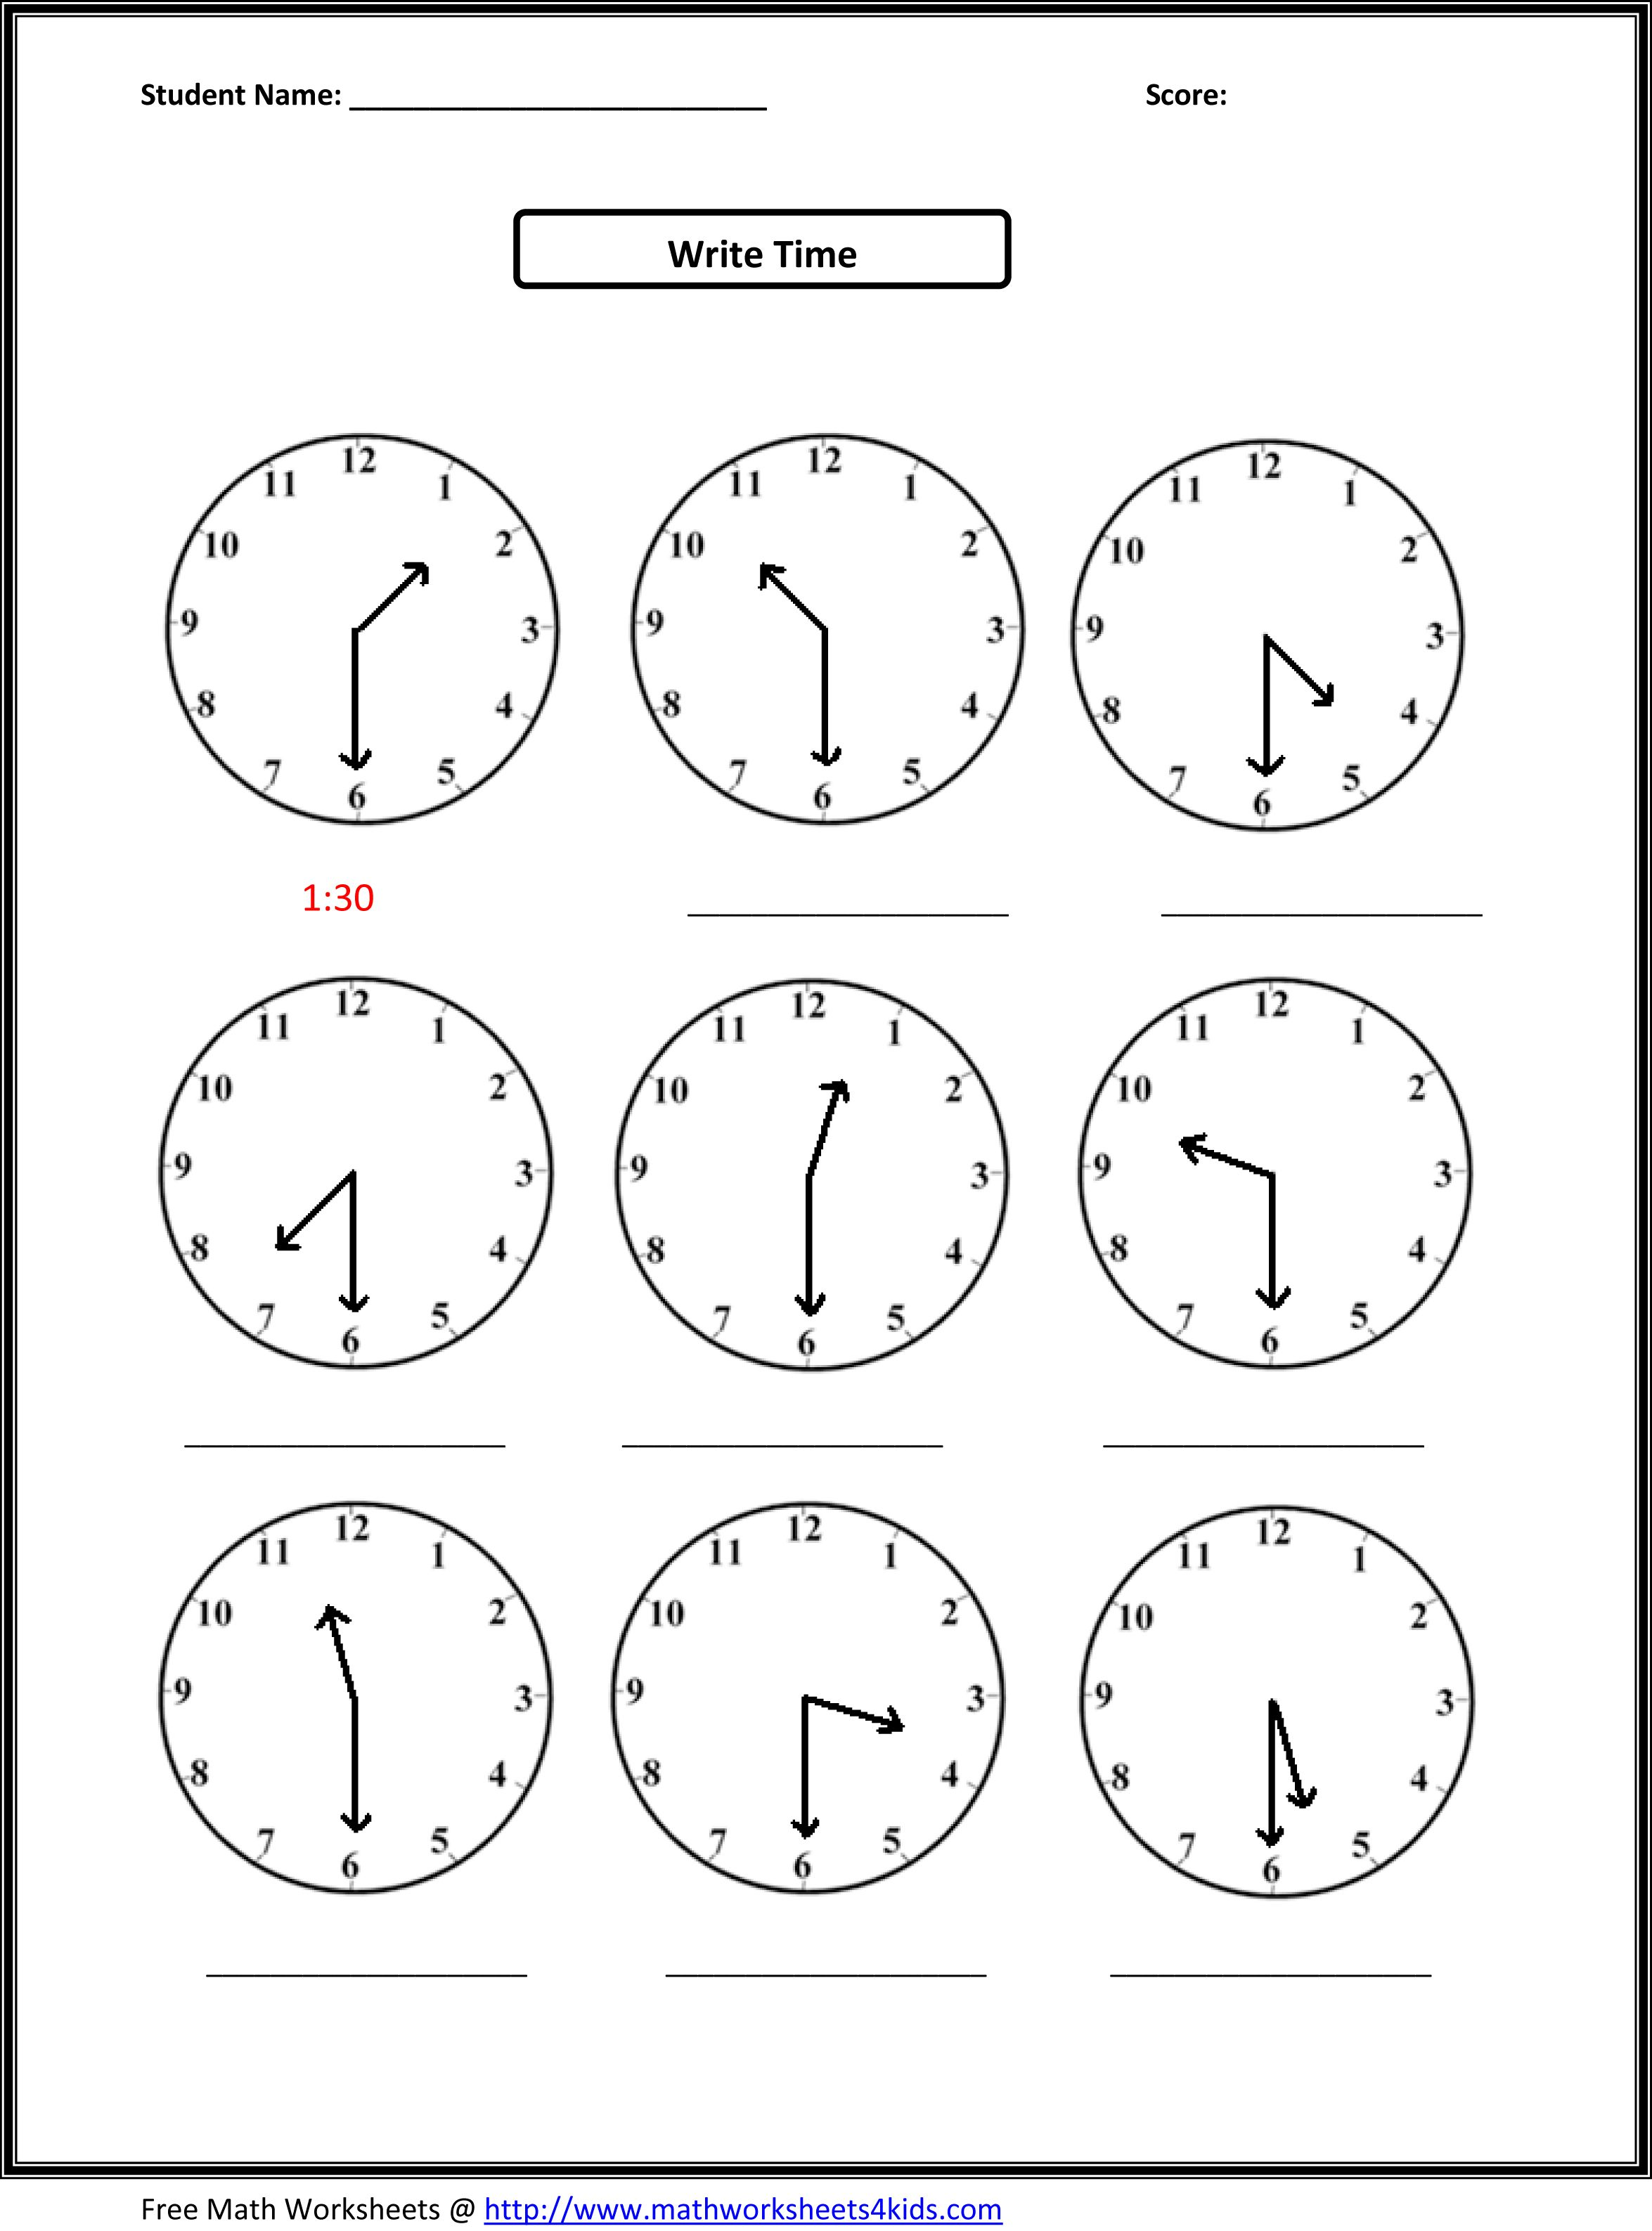 Proatmealus  Stunning Worksheet On Time For Grade   Reocurent With Lovely Free Printable Telling Time Worksheets Nd Grade  Reocurent With Lovely Grade  Reading Comprehension Worksheets Also Nets And Surface Area Worksheet In Addition Child Tax Worksheet And The Cell Cycle Coloring Worksheet Key As Well As Dolch Word Worksheets Additionally Kindergarten Worksheet Printables From Reocurentcom With Proatmealus  Lovely Worksheet On Time For Grade   Reocurent With Lovely Free Printable Telling Time Worksheets Nd Grade  Reocurent And Stunning Grade  Reading Comprehension Worksheets Also Nets And Surface Area Worksheet In Addition Child Tax Worksheet From Reocurentcom